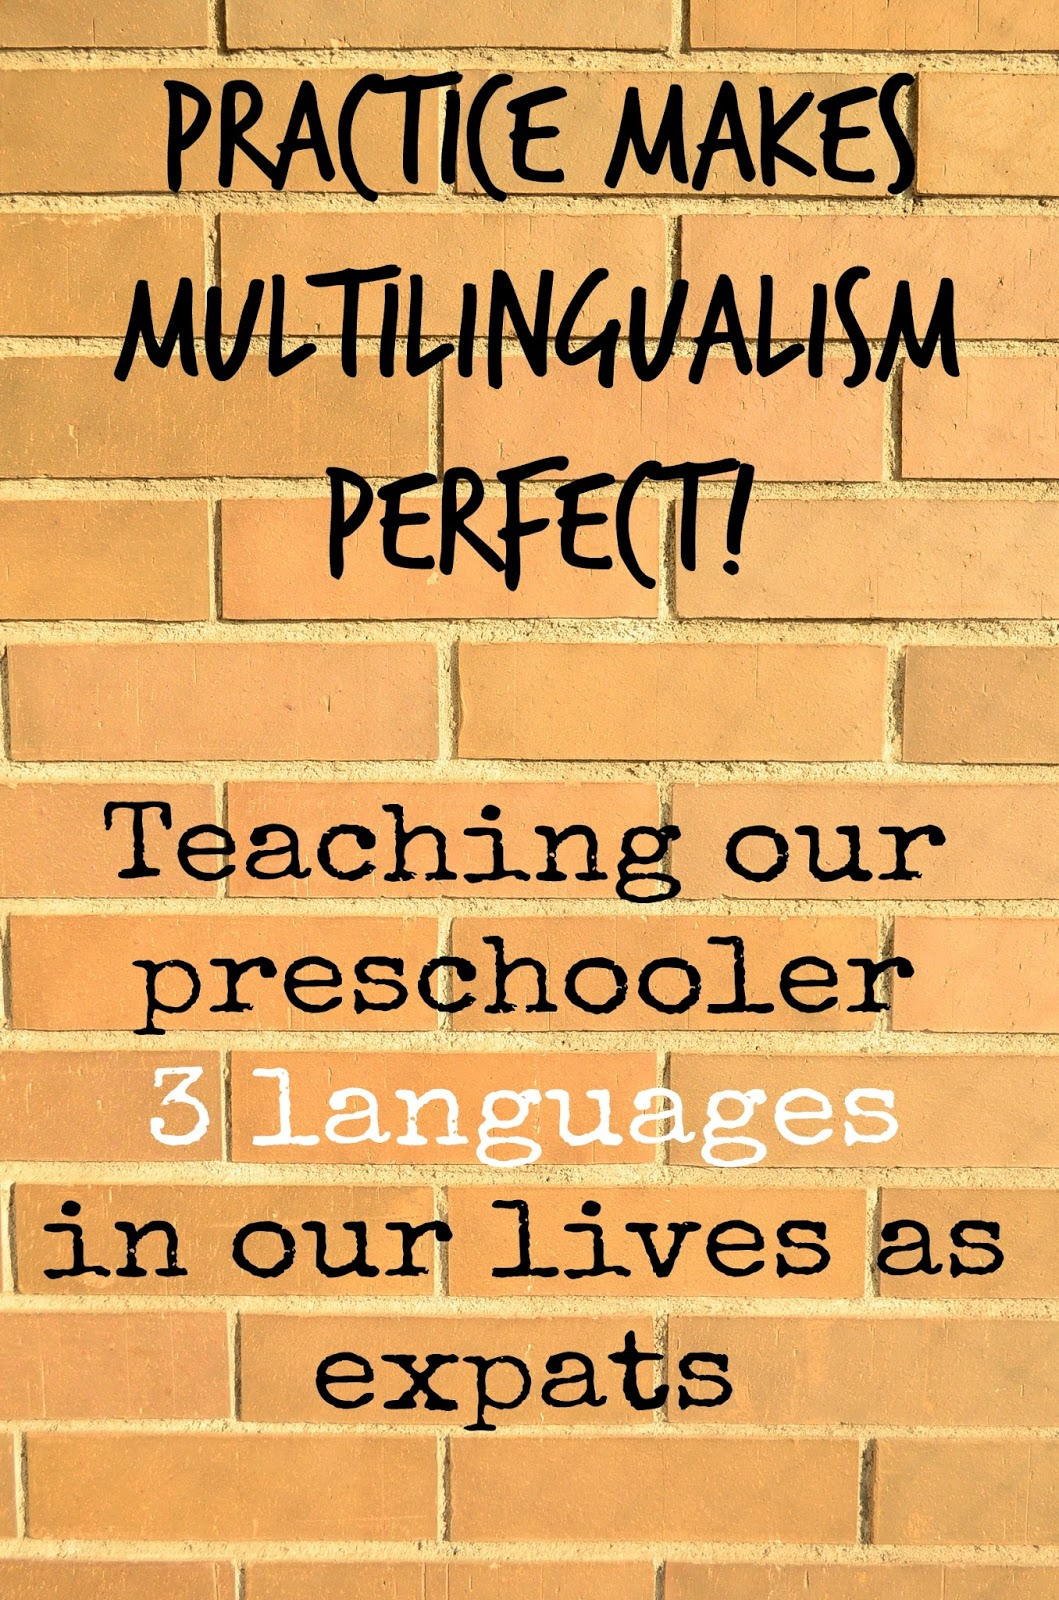 The Practical Mom: Practice makes multilingualism perfect! Teaching our preschooler 3 languages, in our lives as expats.